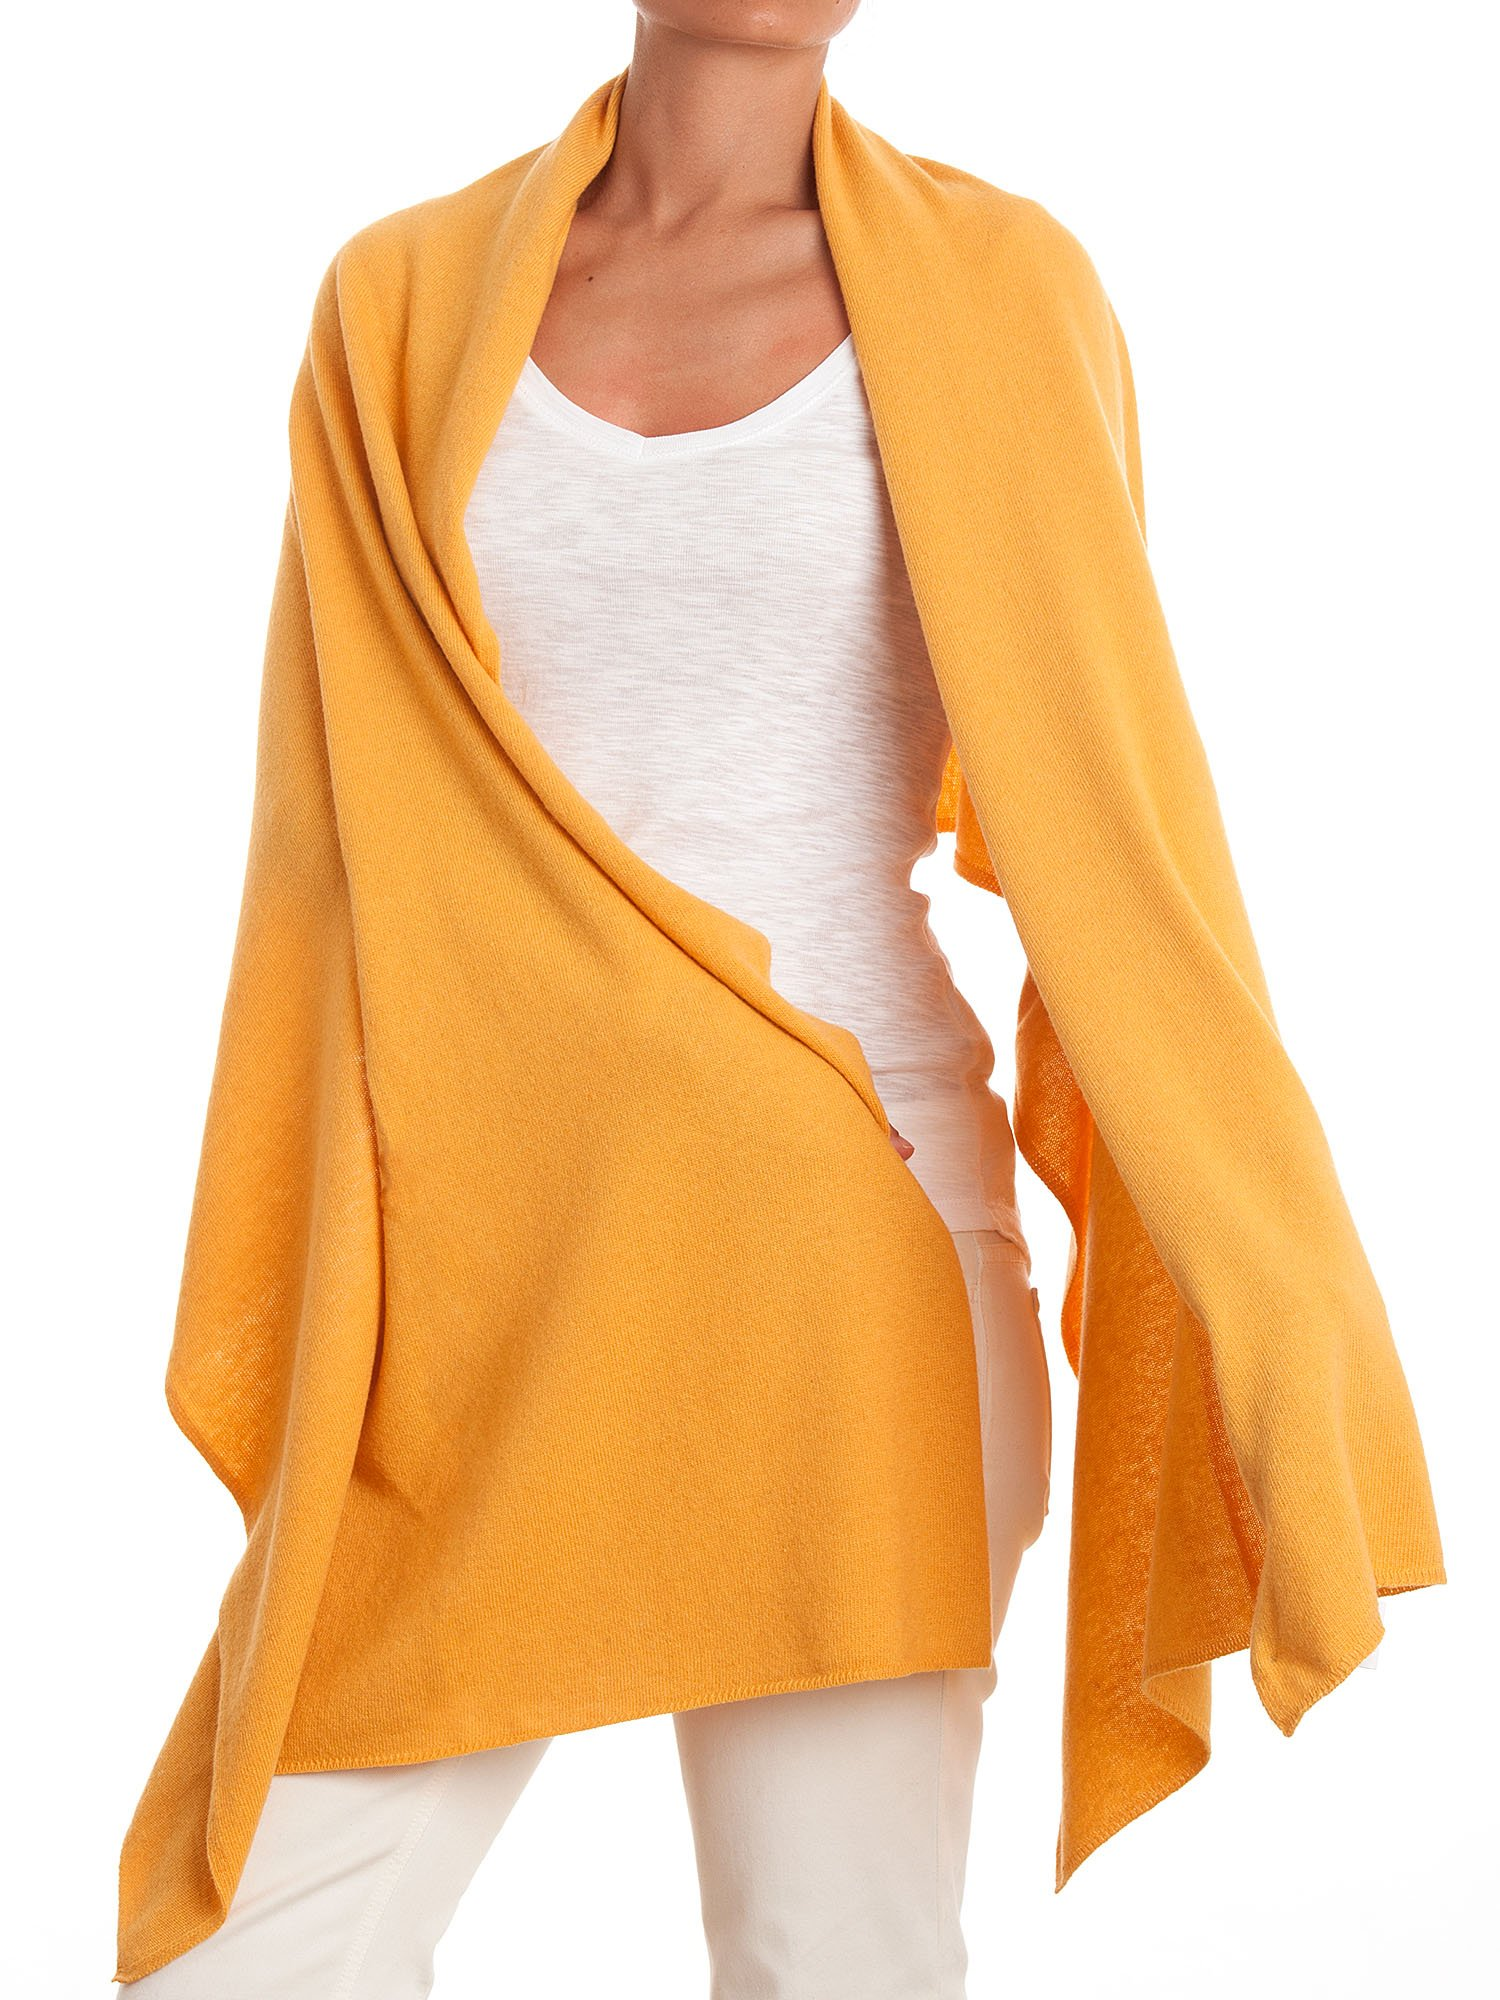 Dalle Piane Cashmere - Stole cashmere blend - Made in Italy, Color: Yellow, One Size